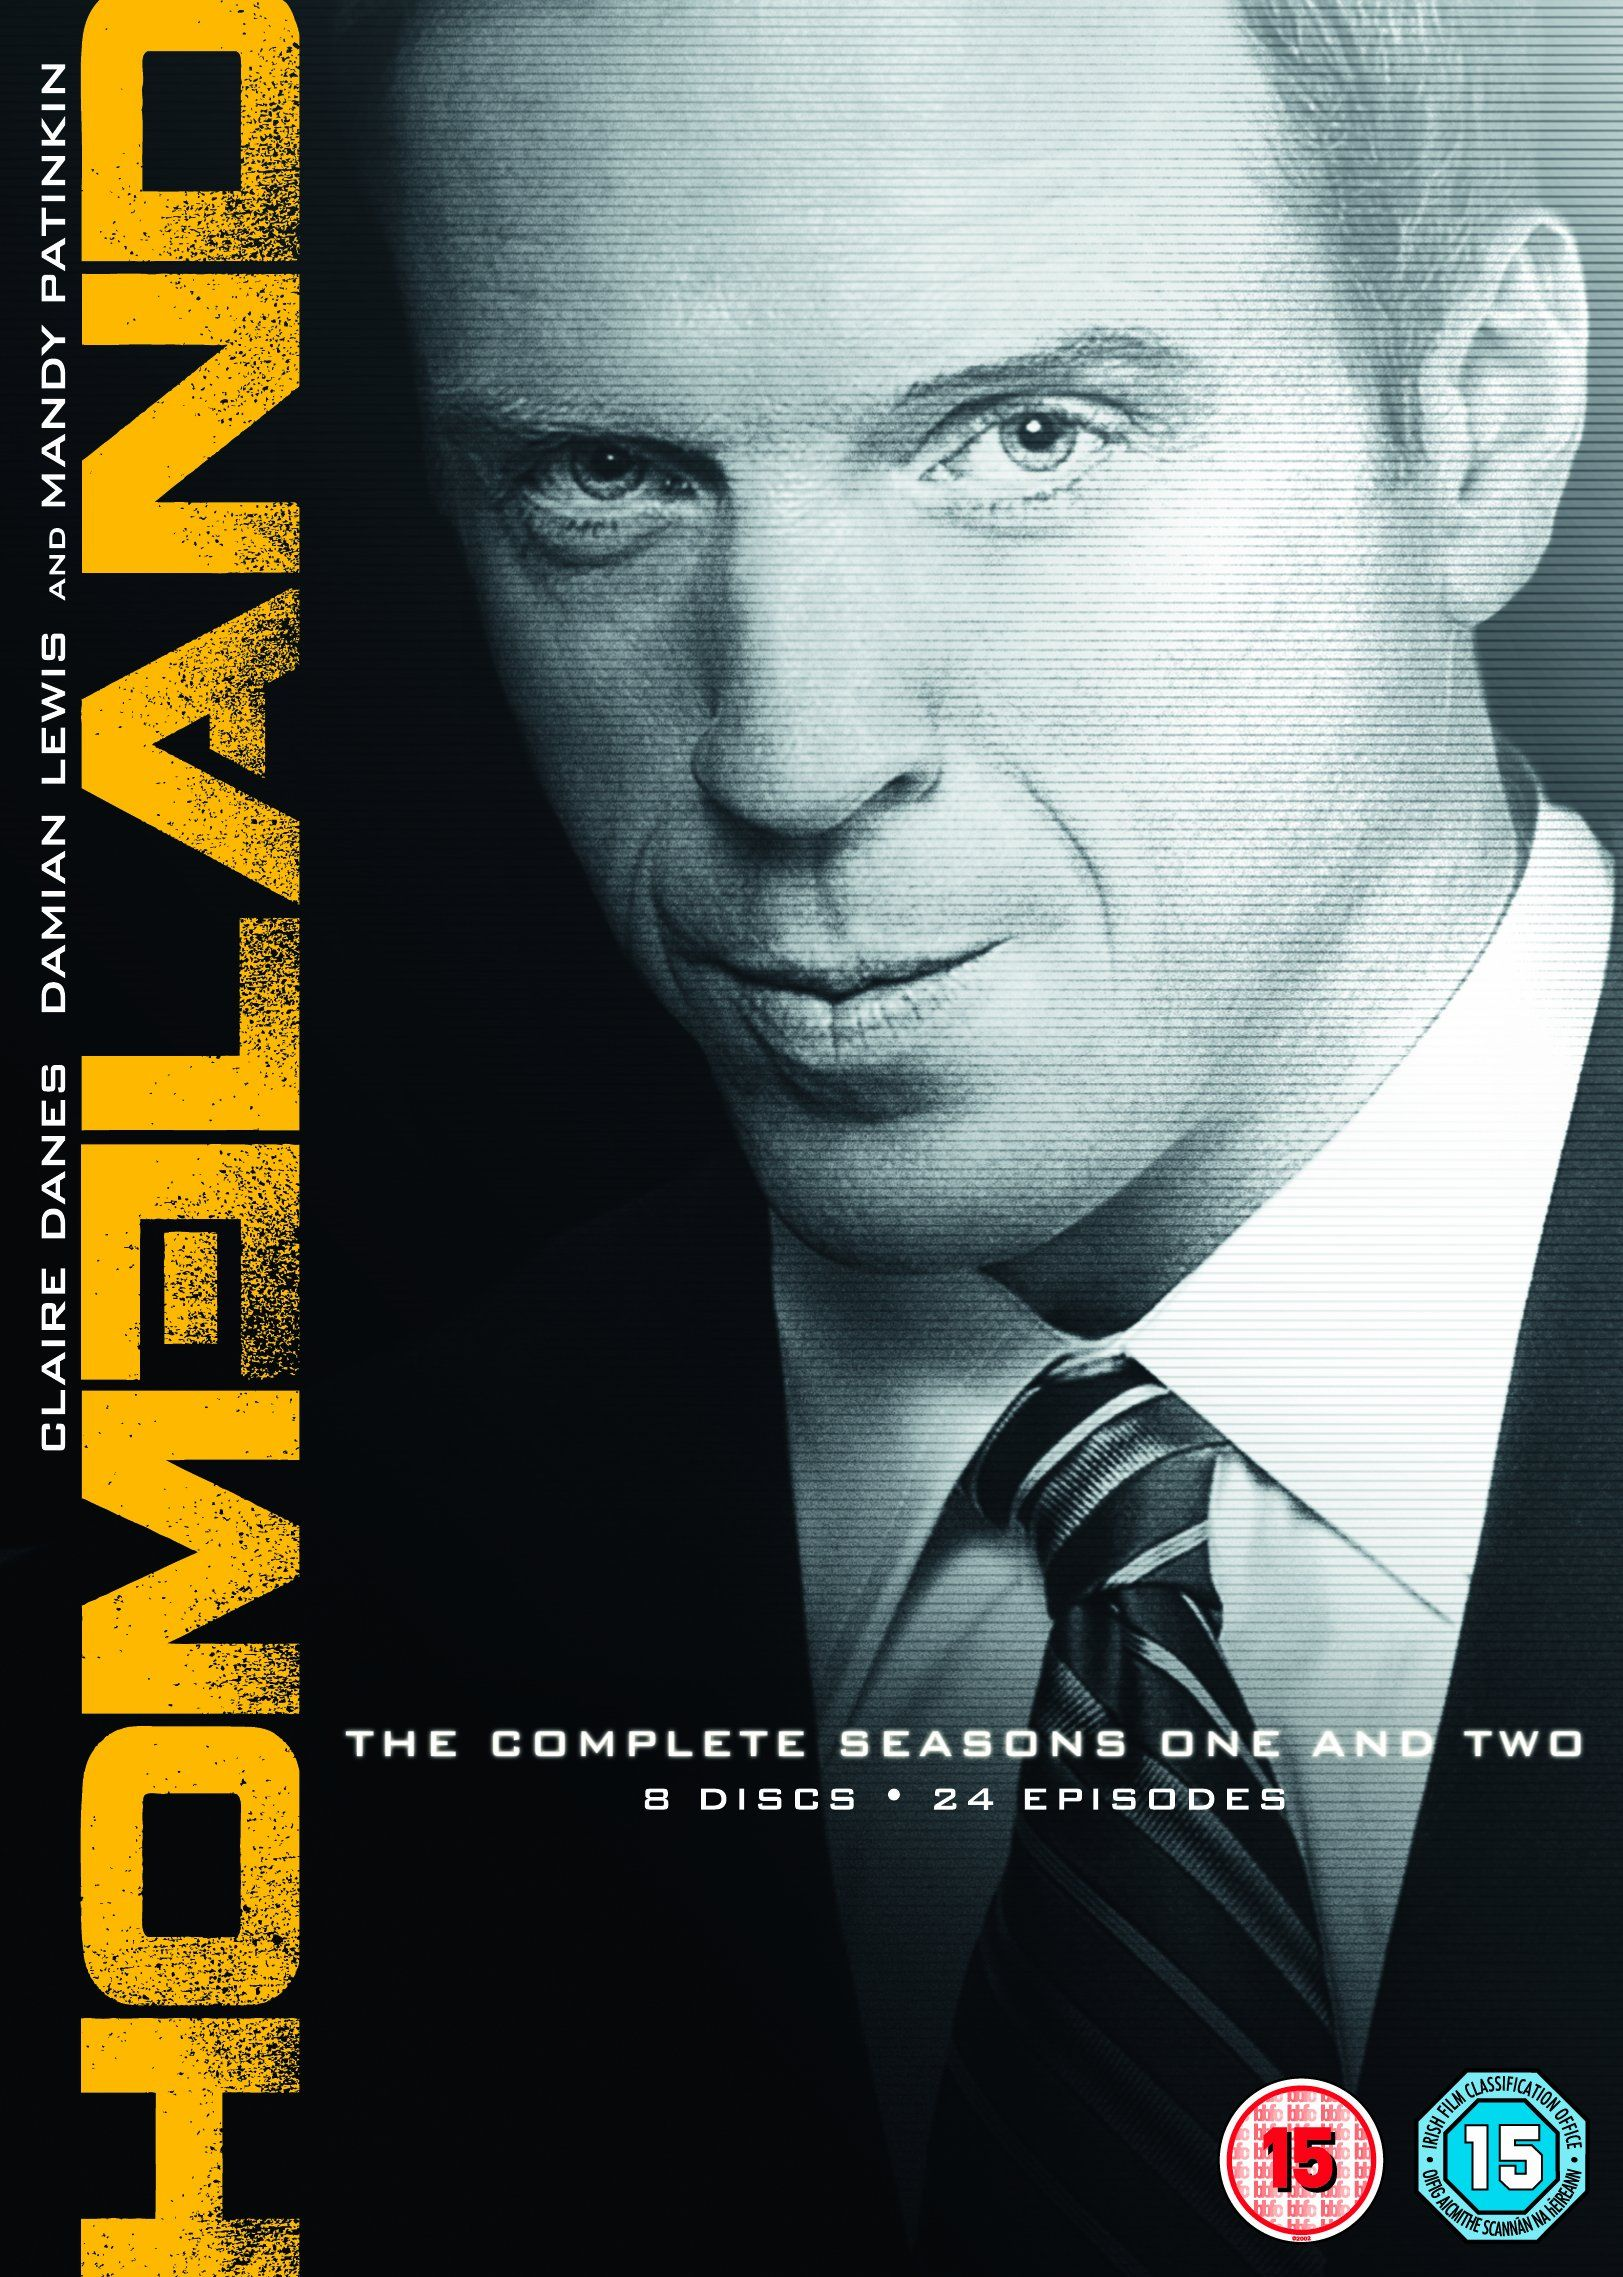 Homeland Dvd Cover Dvd Covers Movie Posters Image